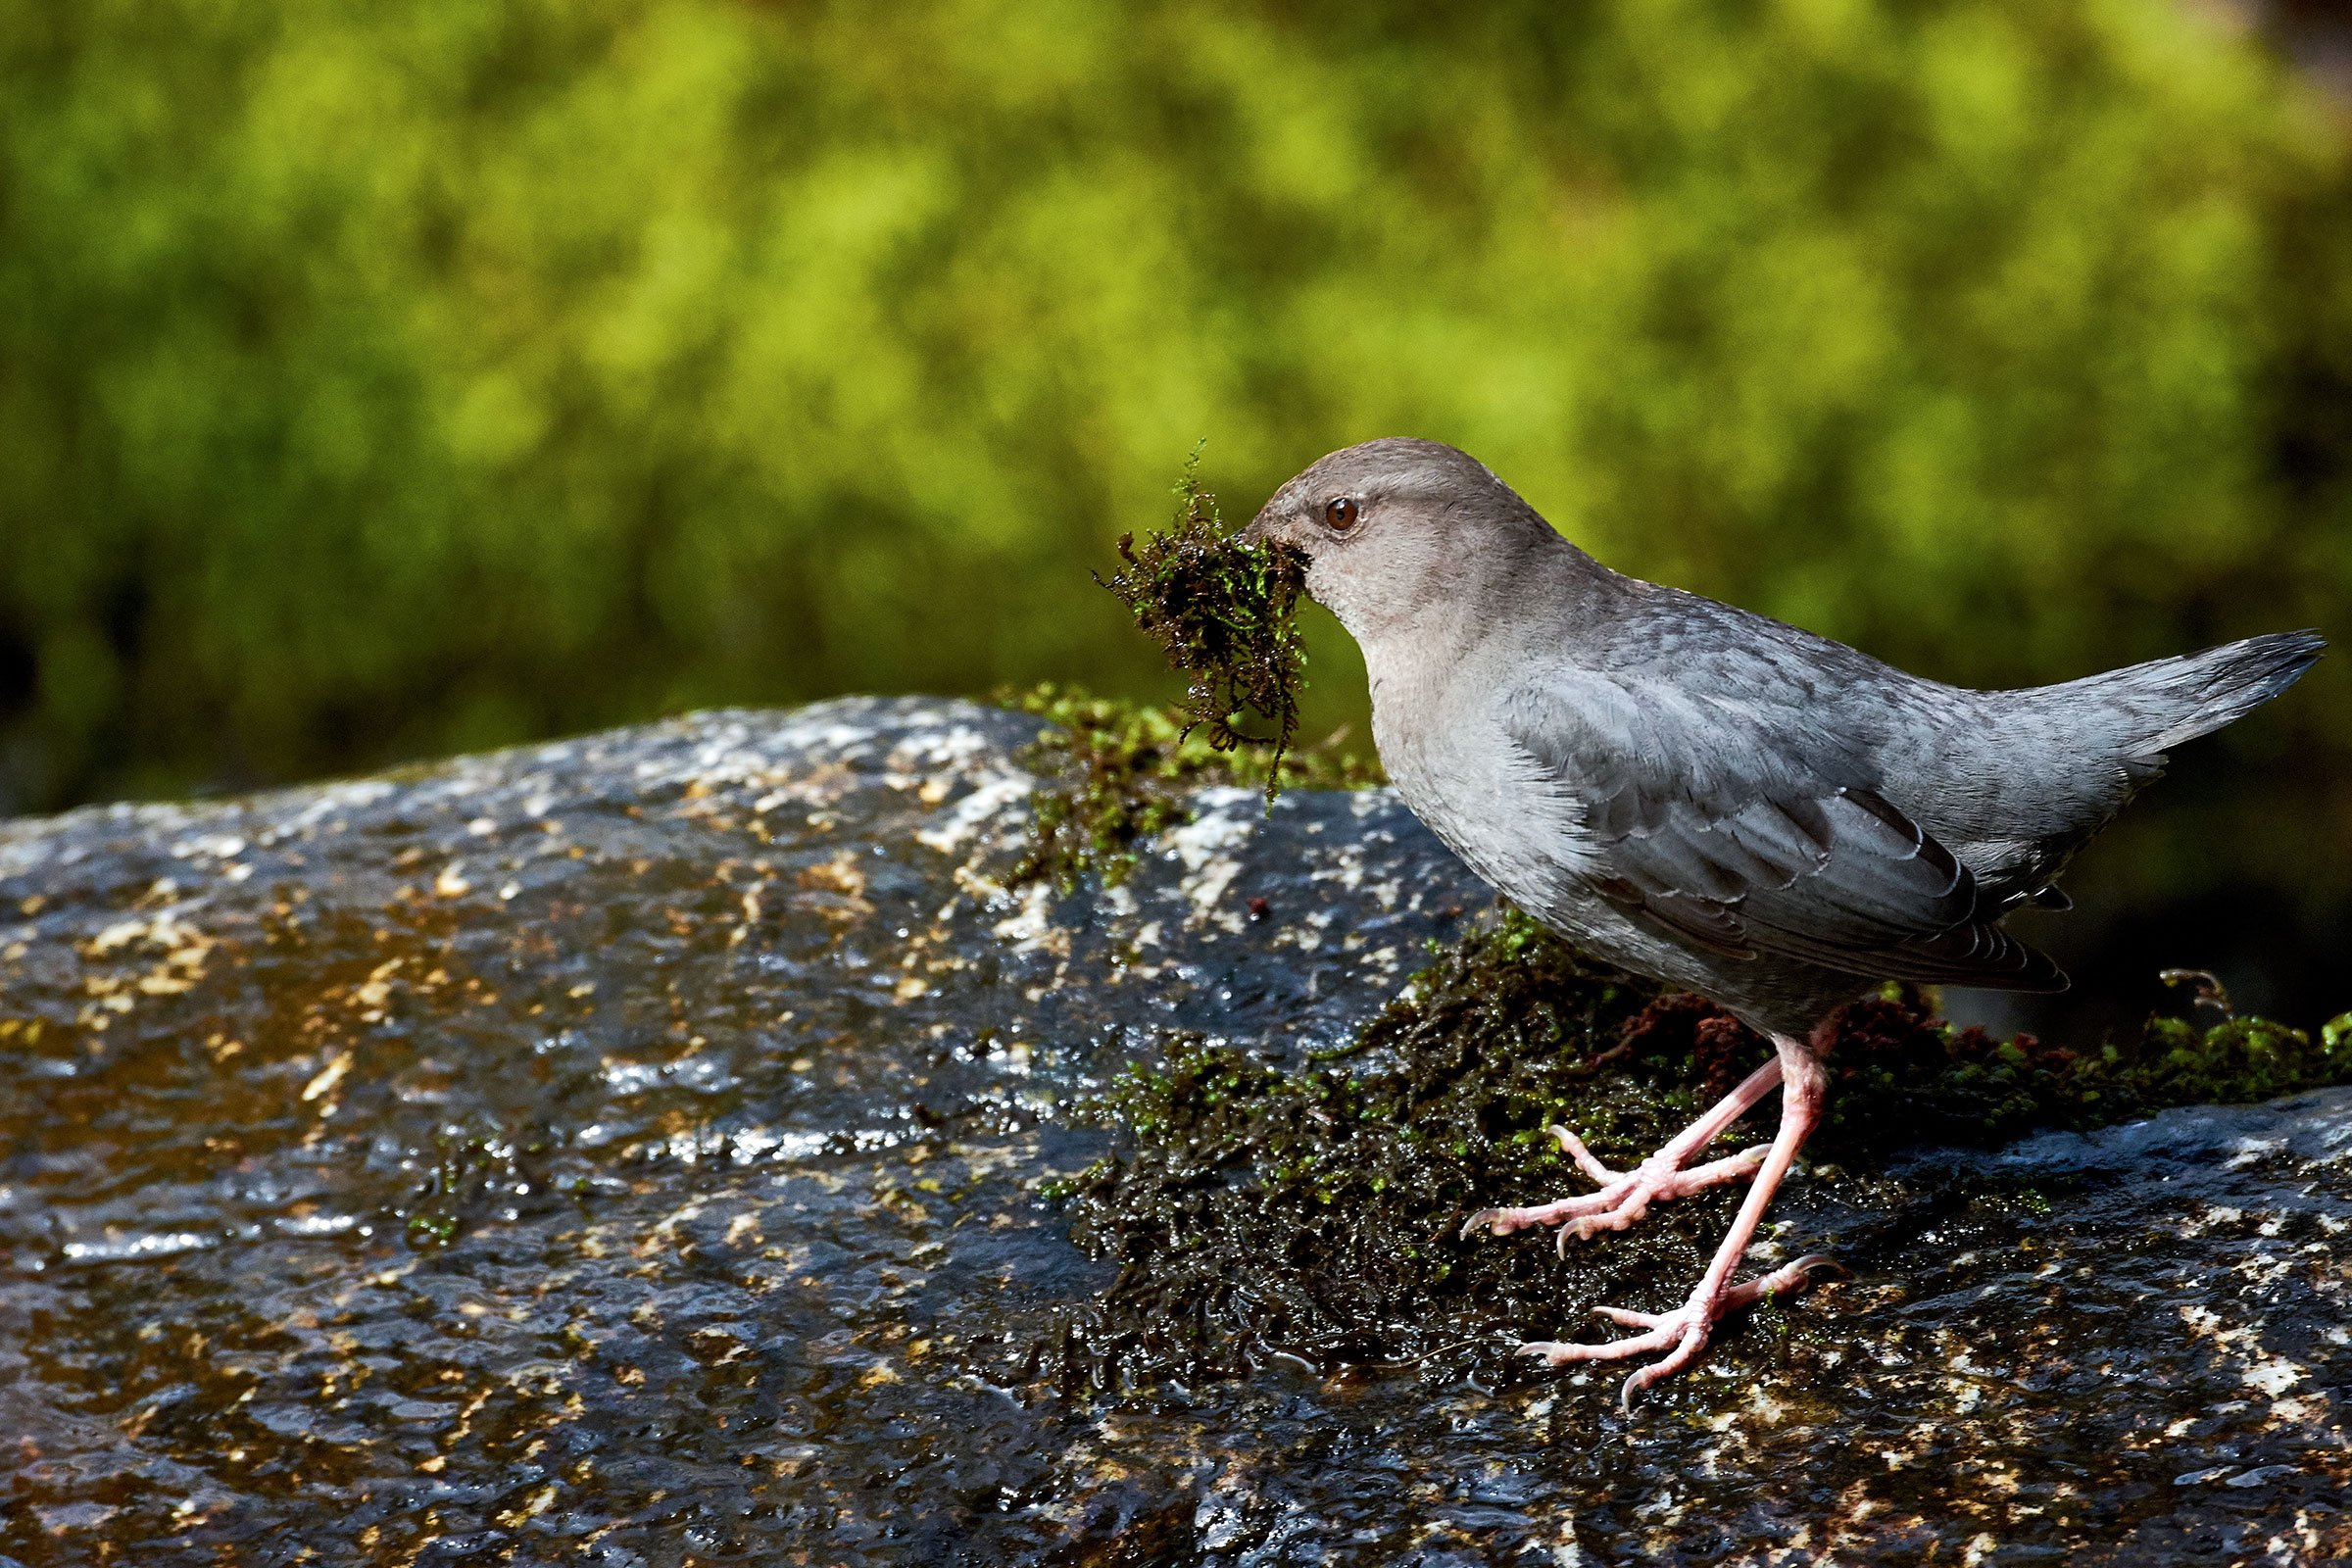 """American Dippers have been a crucial indicator of the Elwha River's state—both in sickness and in health. Frank D. Lospalluto/<a href=""""https://www.flickr.com/photos/chloesview/24600168463/"""">Flickr (CC BY-NC-ND 2.0)</a>"""